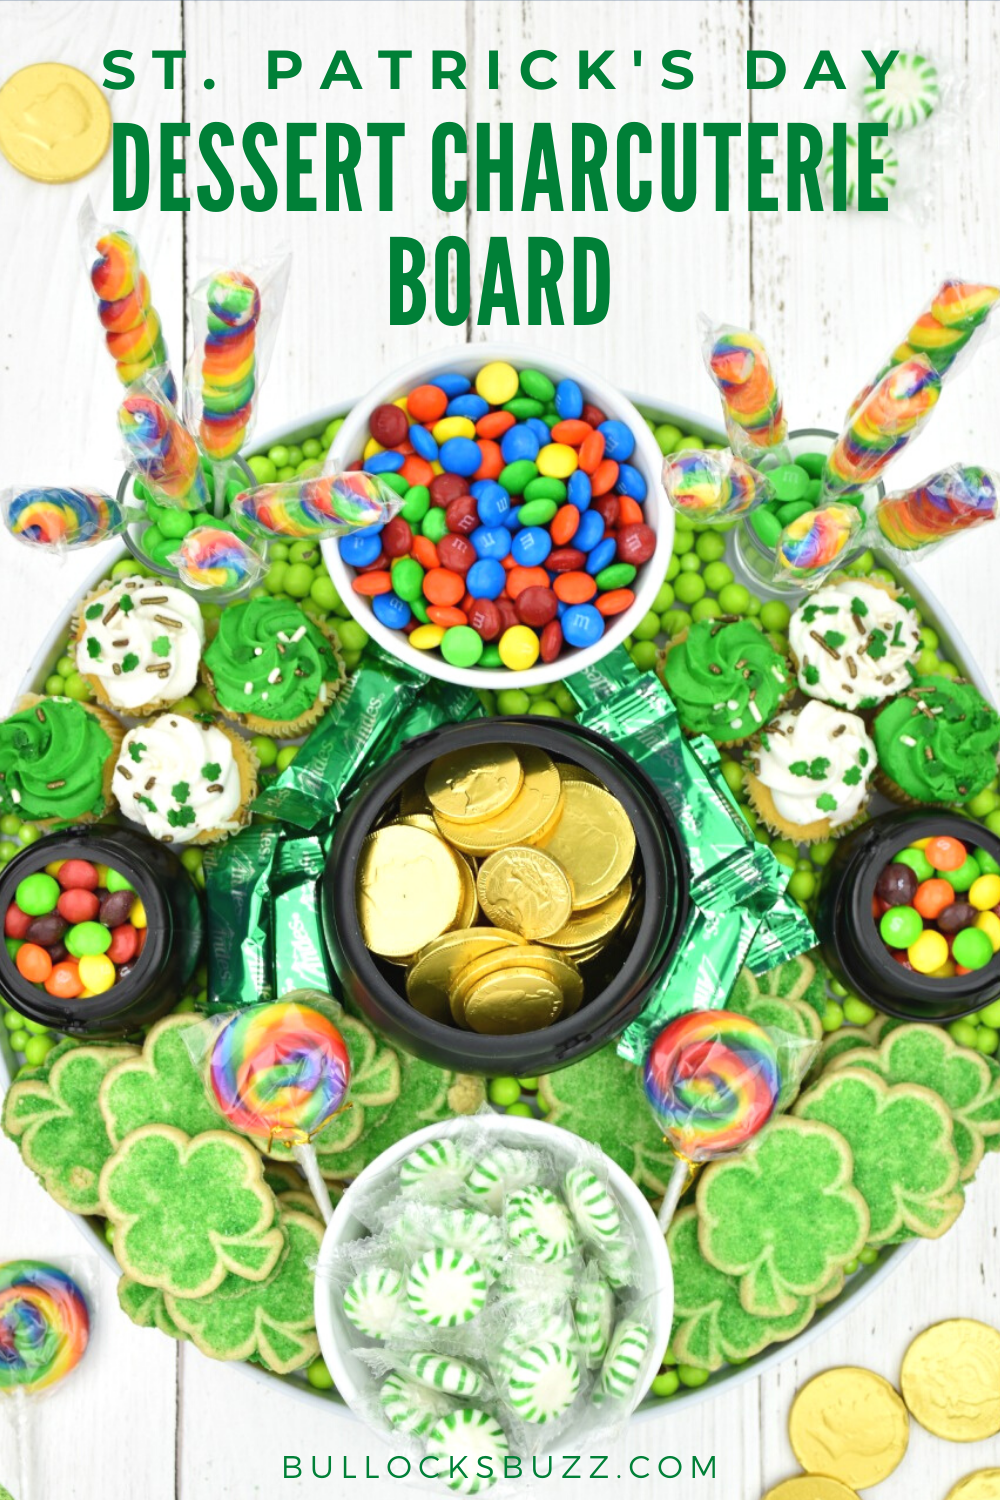 This eye-catching Dessert Charcuterie Board for St. Patrick's Day is SO much tasty fun! From shamrocks to rainbows plus a pot of gold, this colorful sweet treat has it all! #stpatricksday #recipe #charcuterieboard